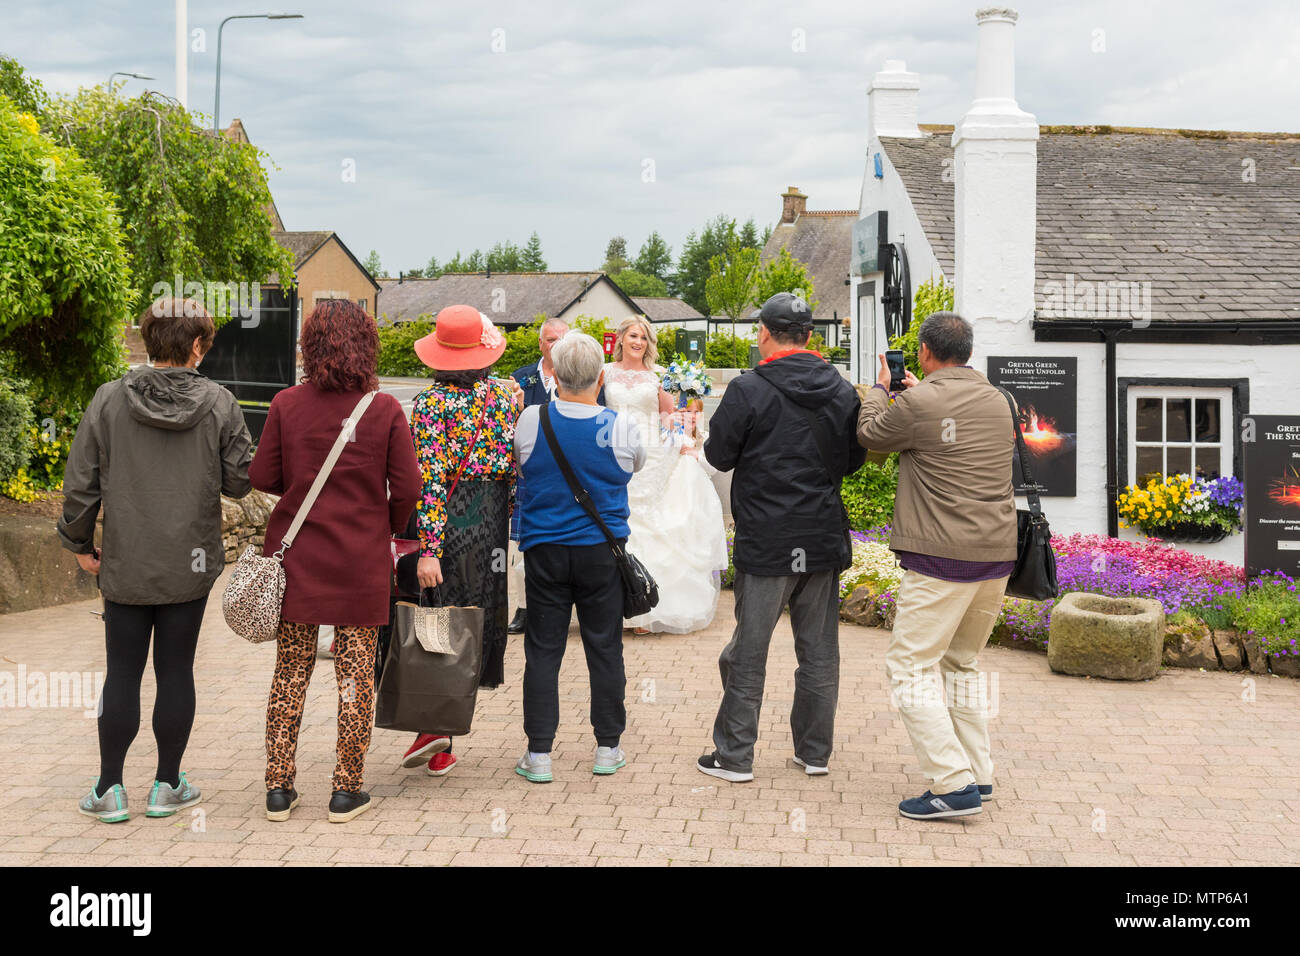 Asian tourists taking photographs of a bride arriving for her wedding at Gretna Green, Scotland, UK - Stock Image